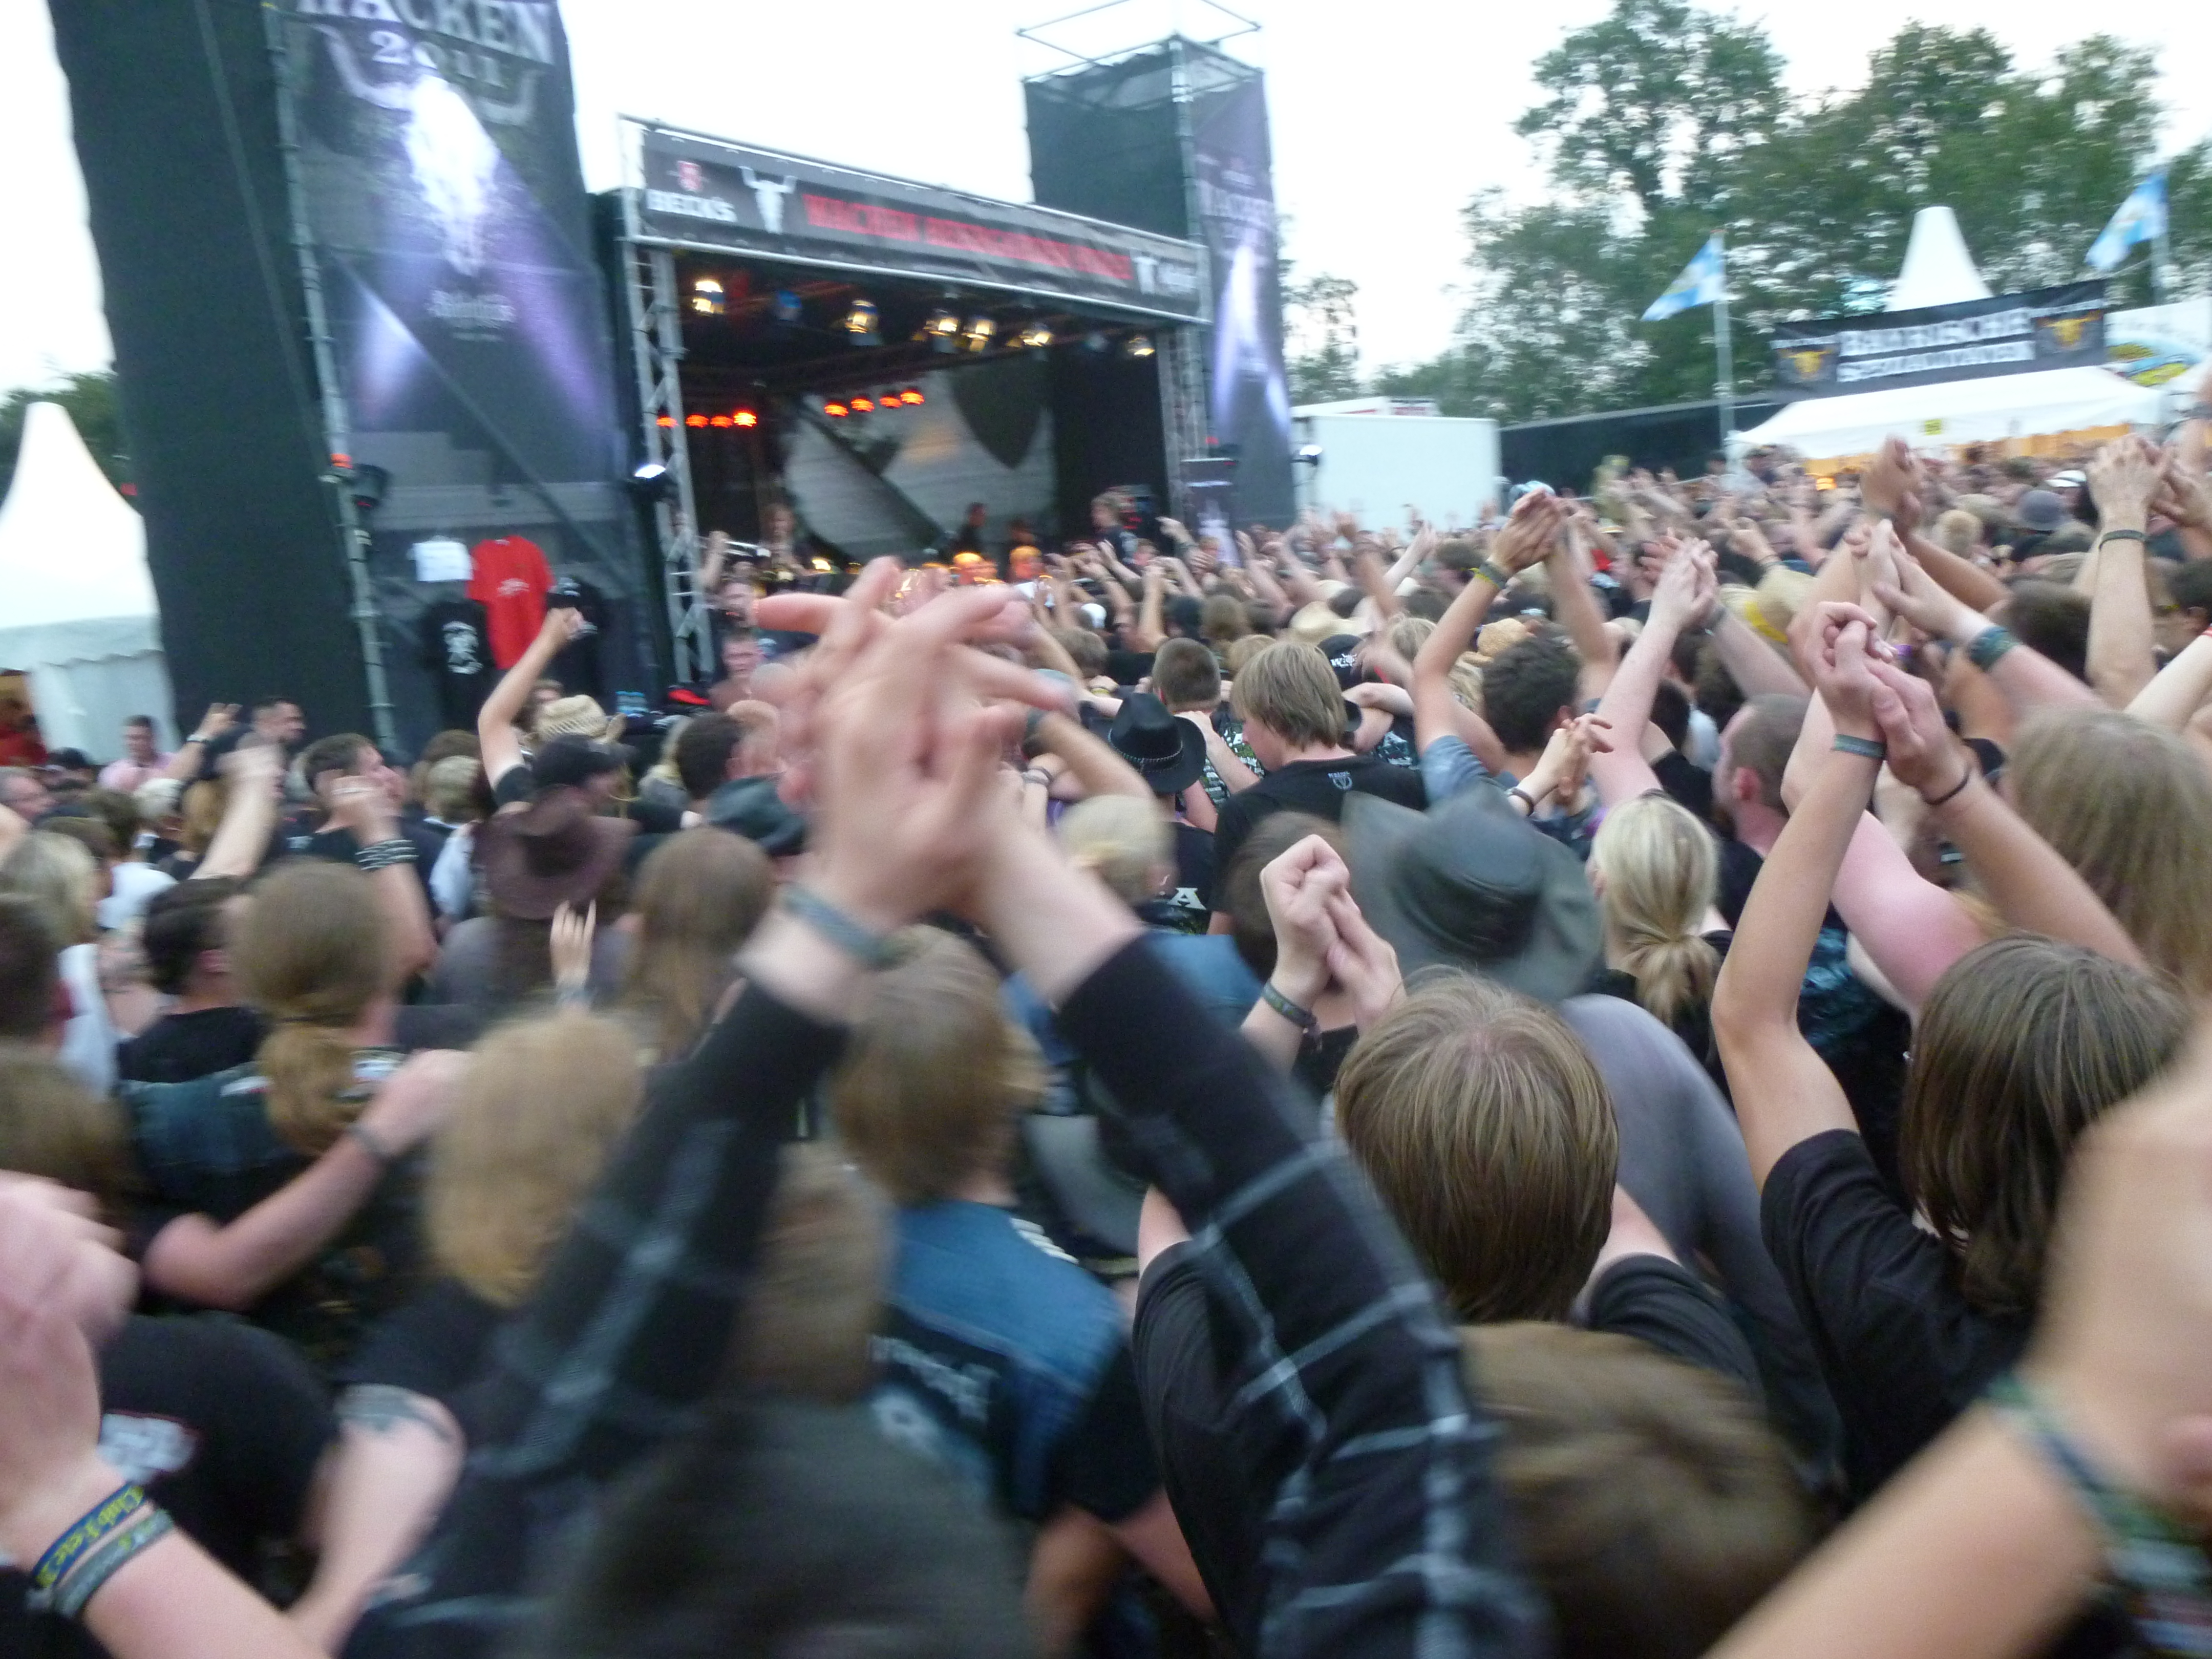 Wacken Open Air 2011: Every Band I saw at Wacken Reviewed